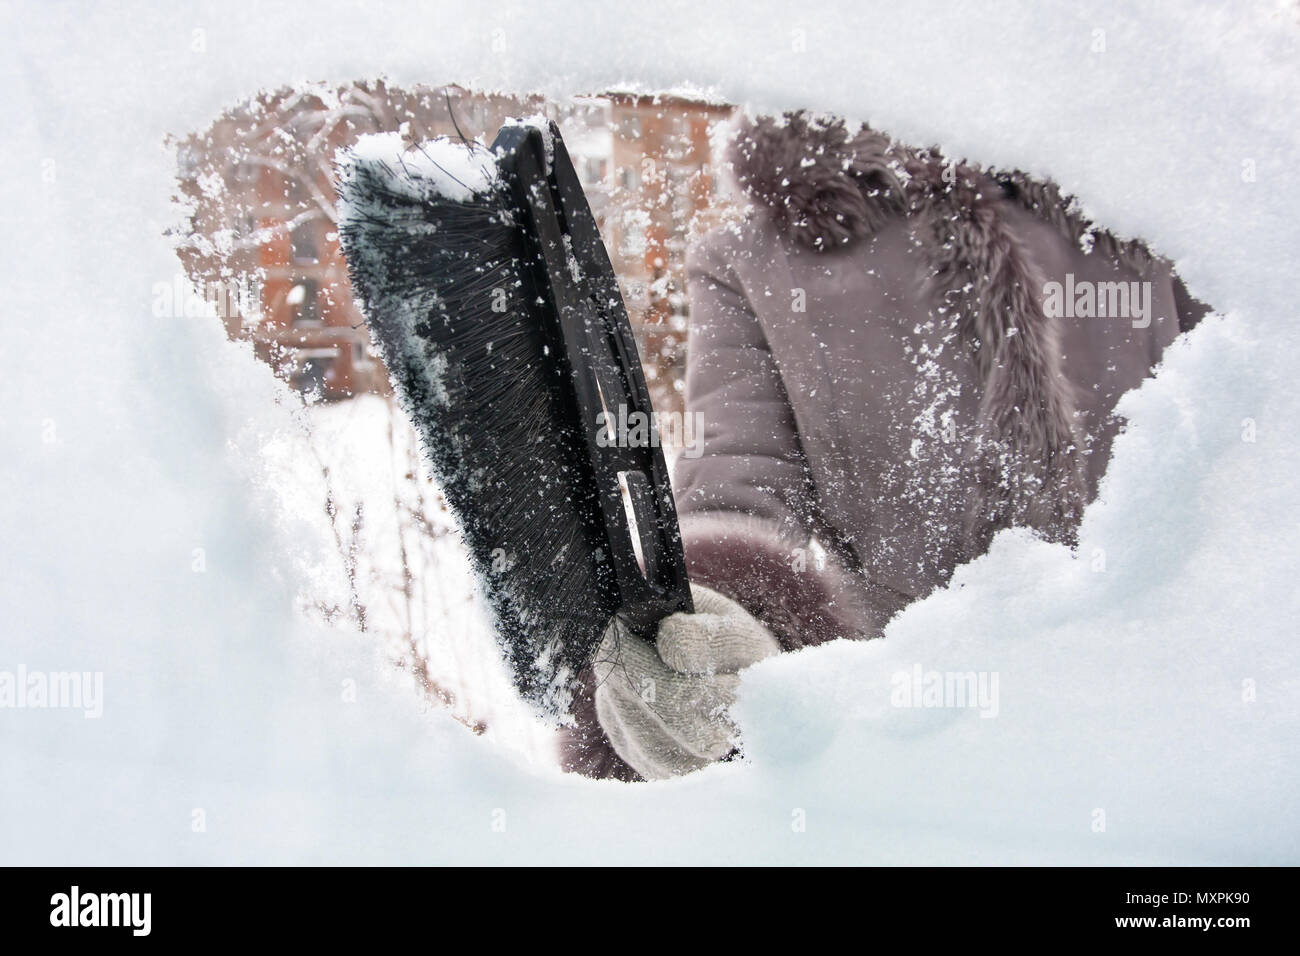 hand cleaning car from the snow with brush - Stock Image